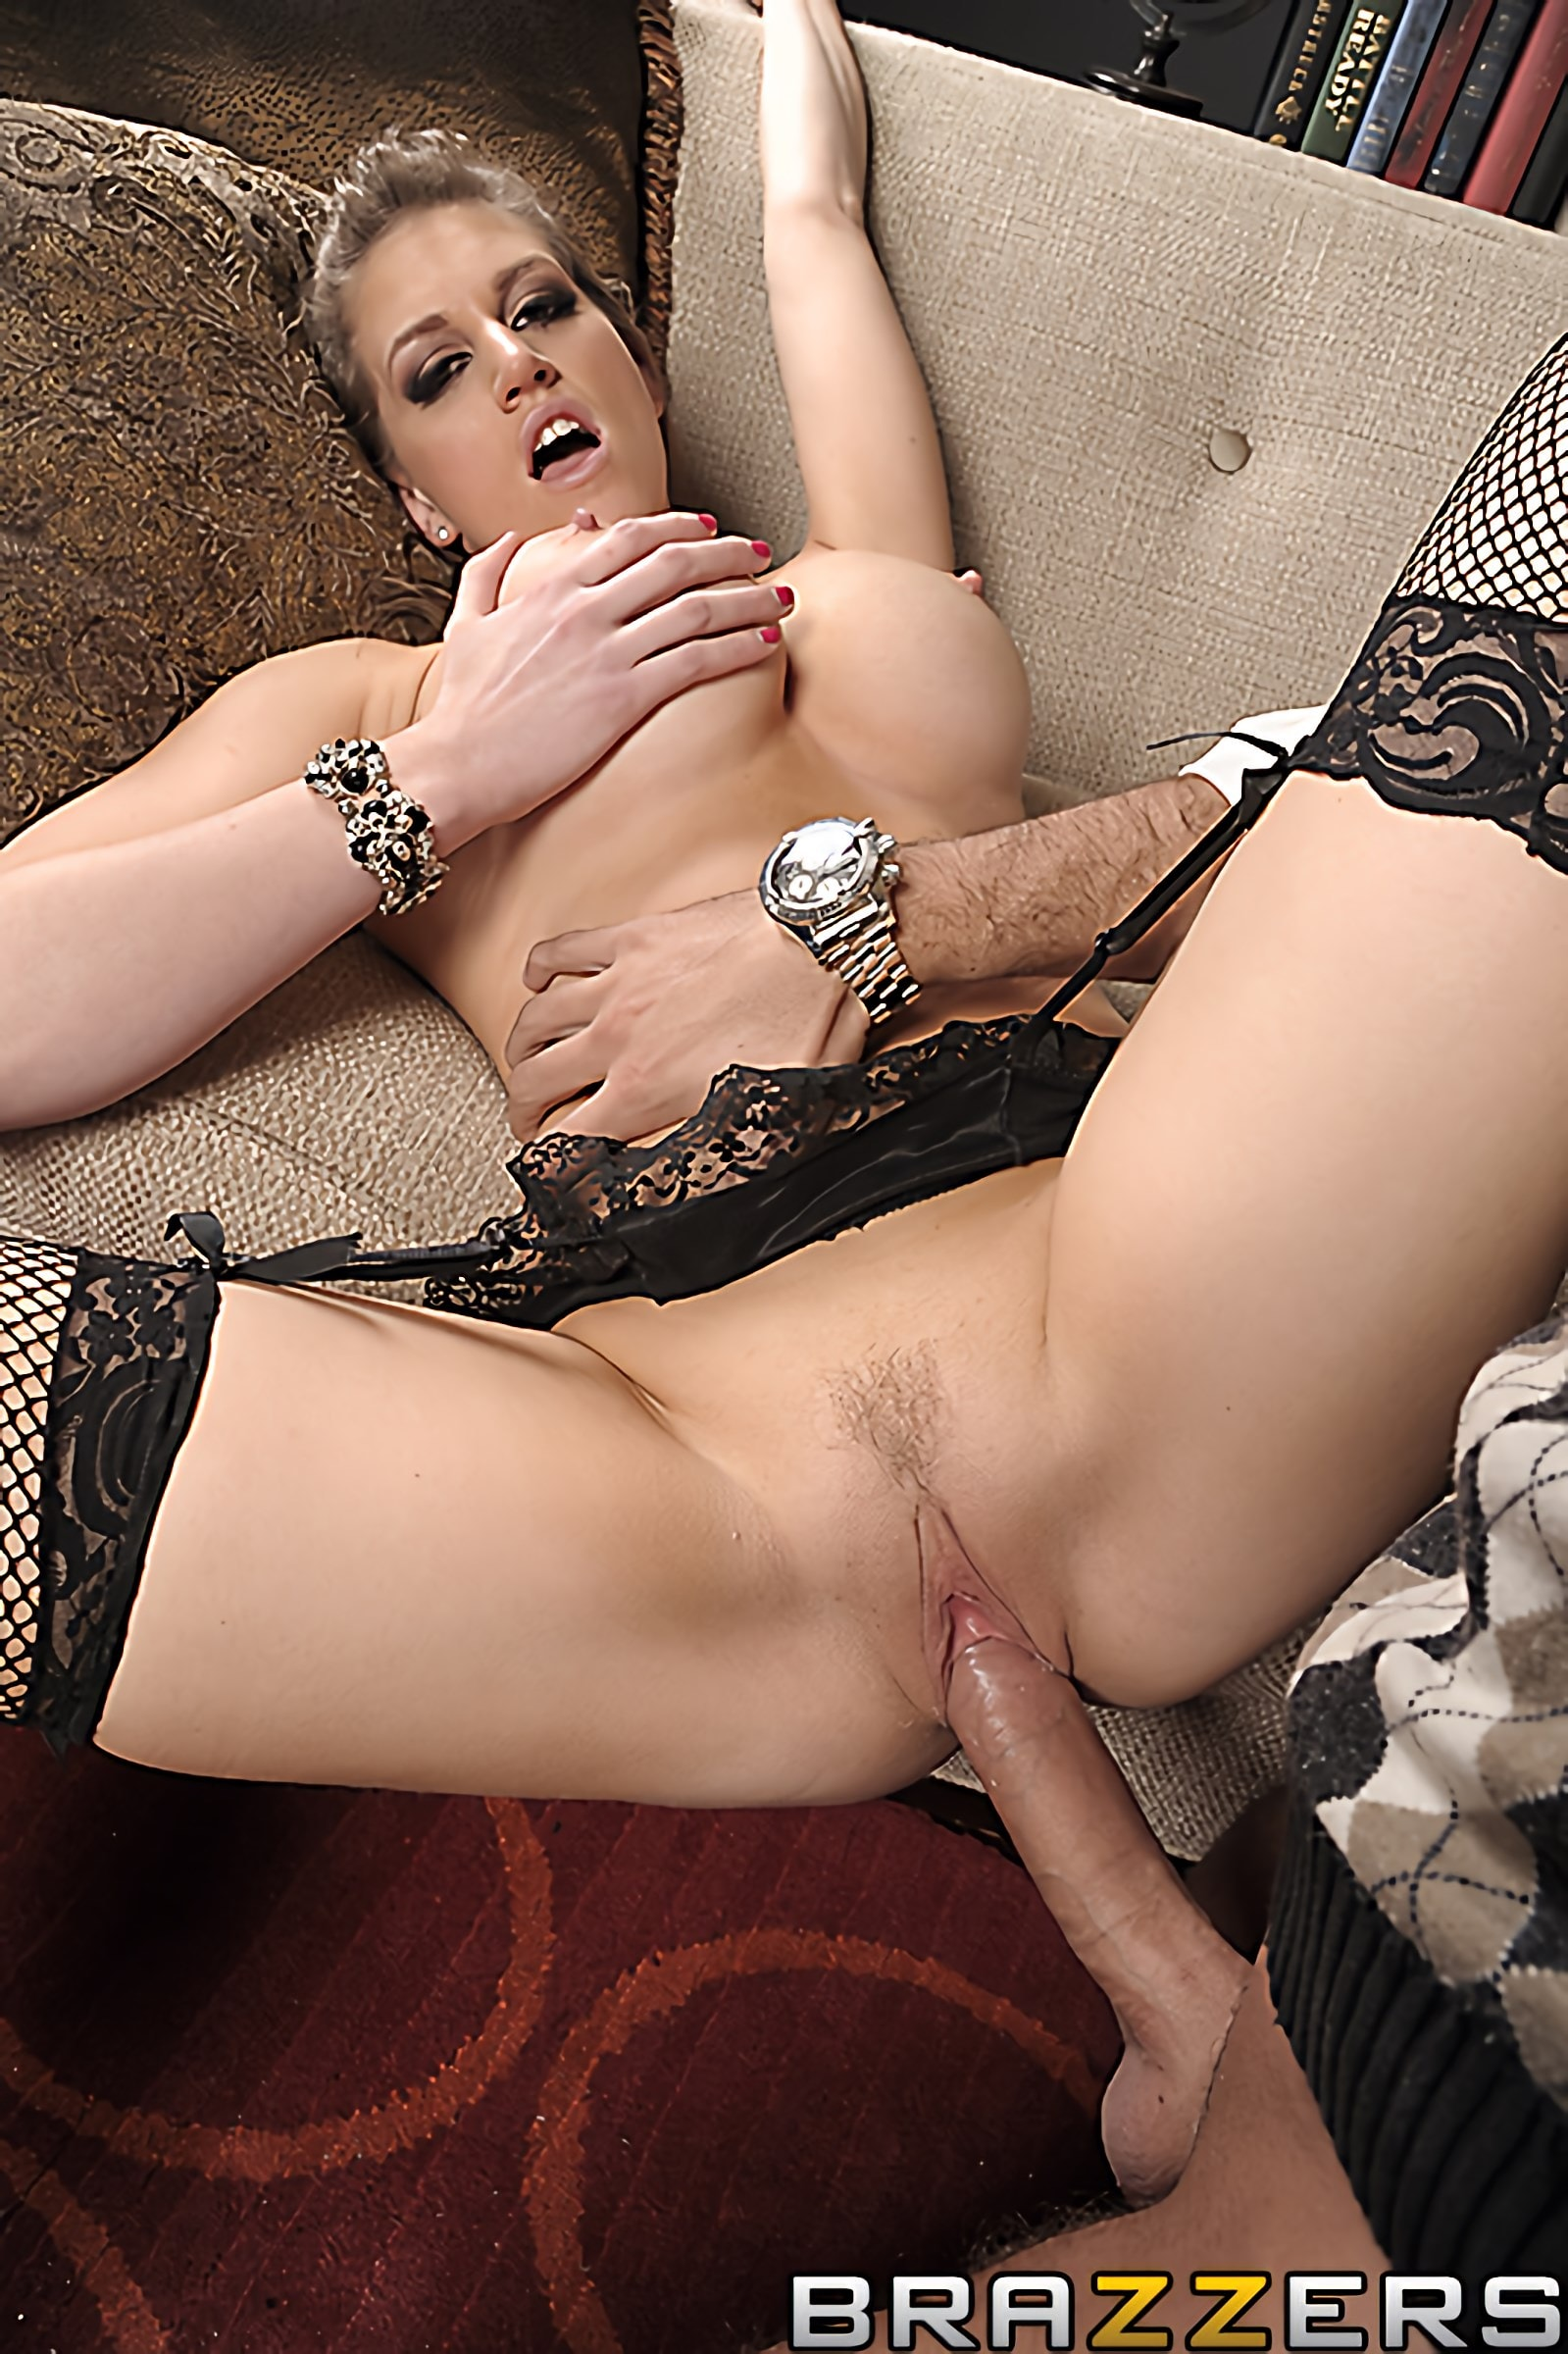 Brazzers 'Slut At Large' starring Eve Laurence (Photo 13)